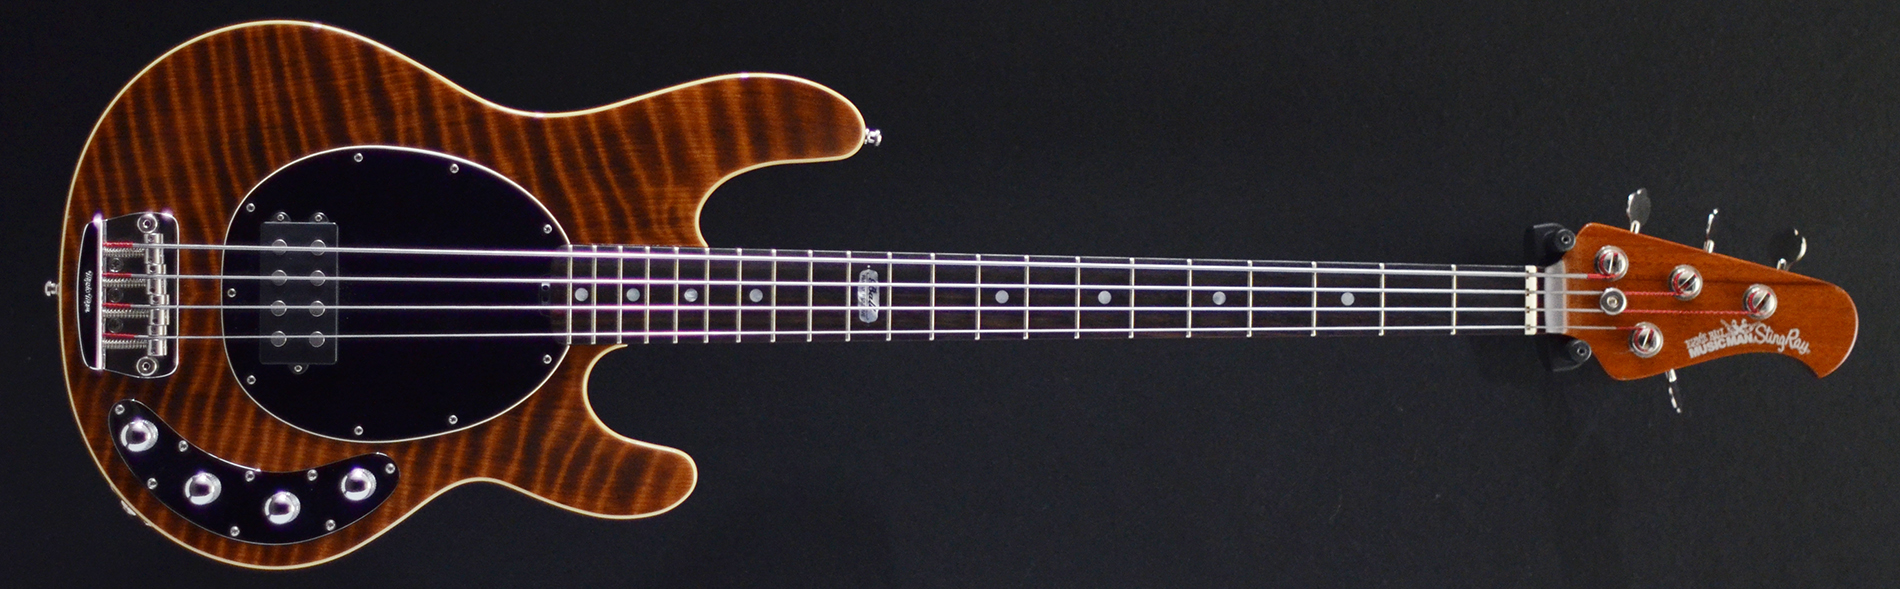 stingray 4 bfr redwood 2008 second hand bass guitar stock used preowned maple neck active